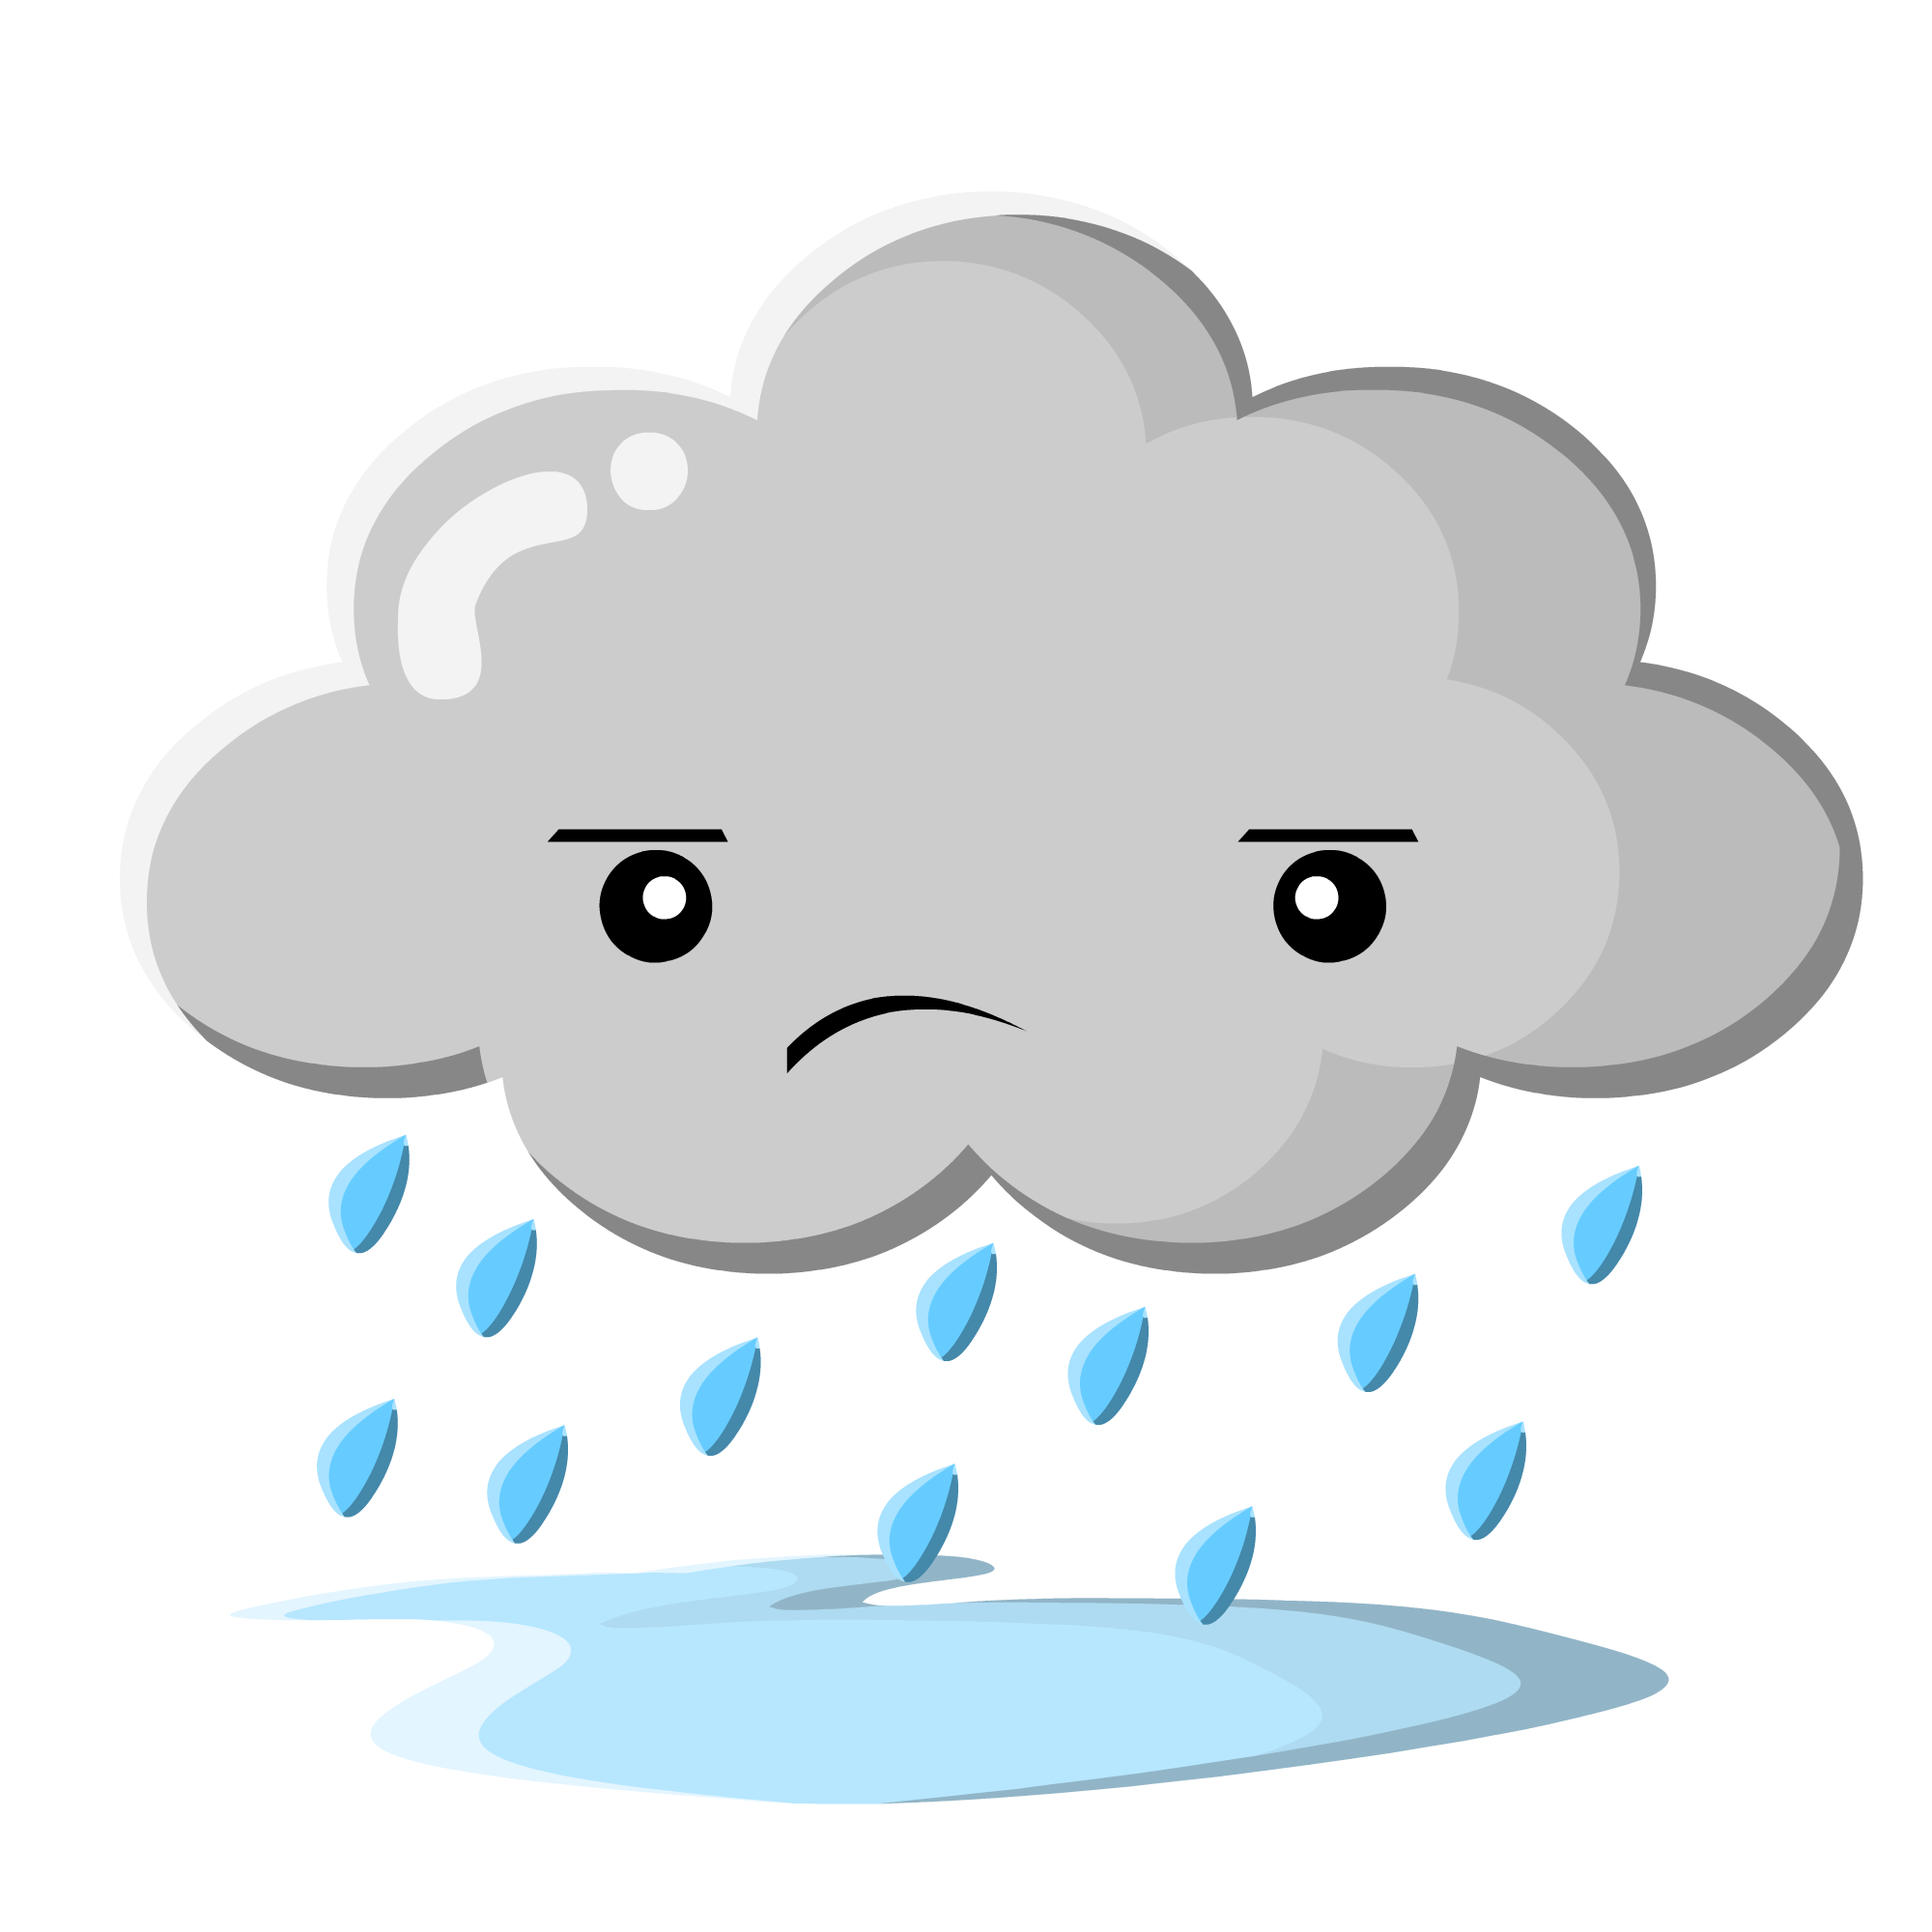 Rain cloud clipart 9.